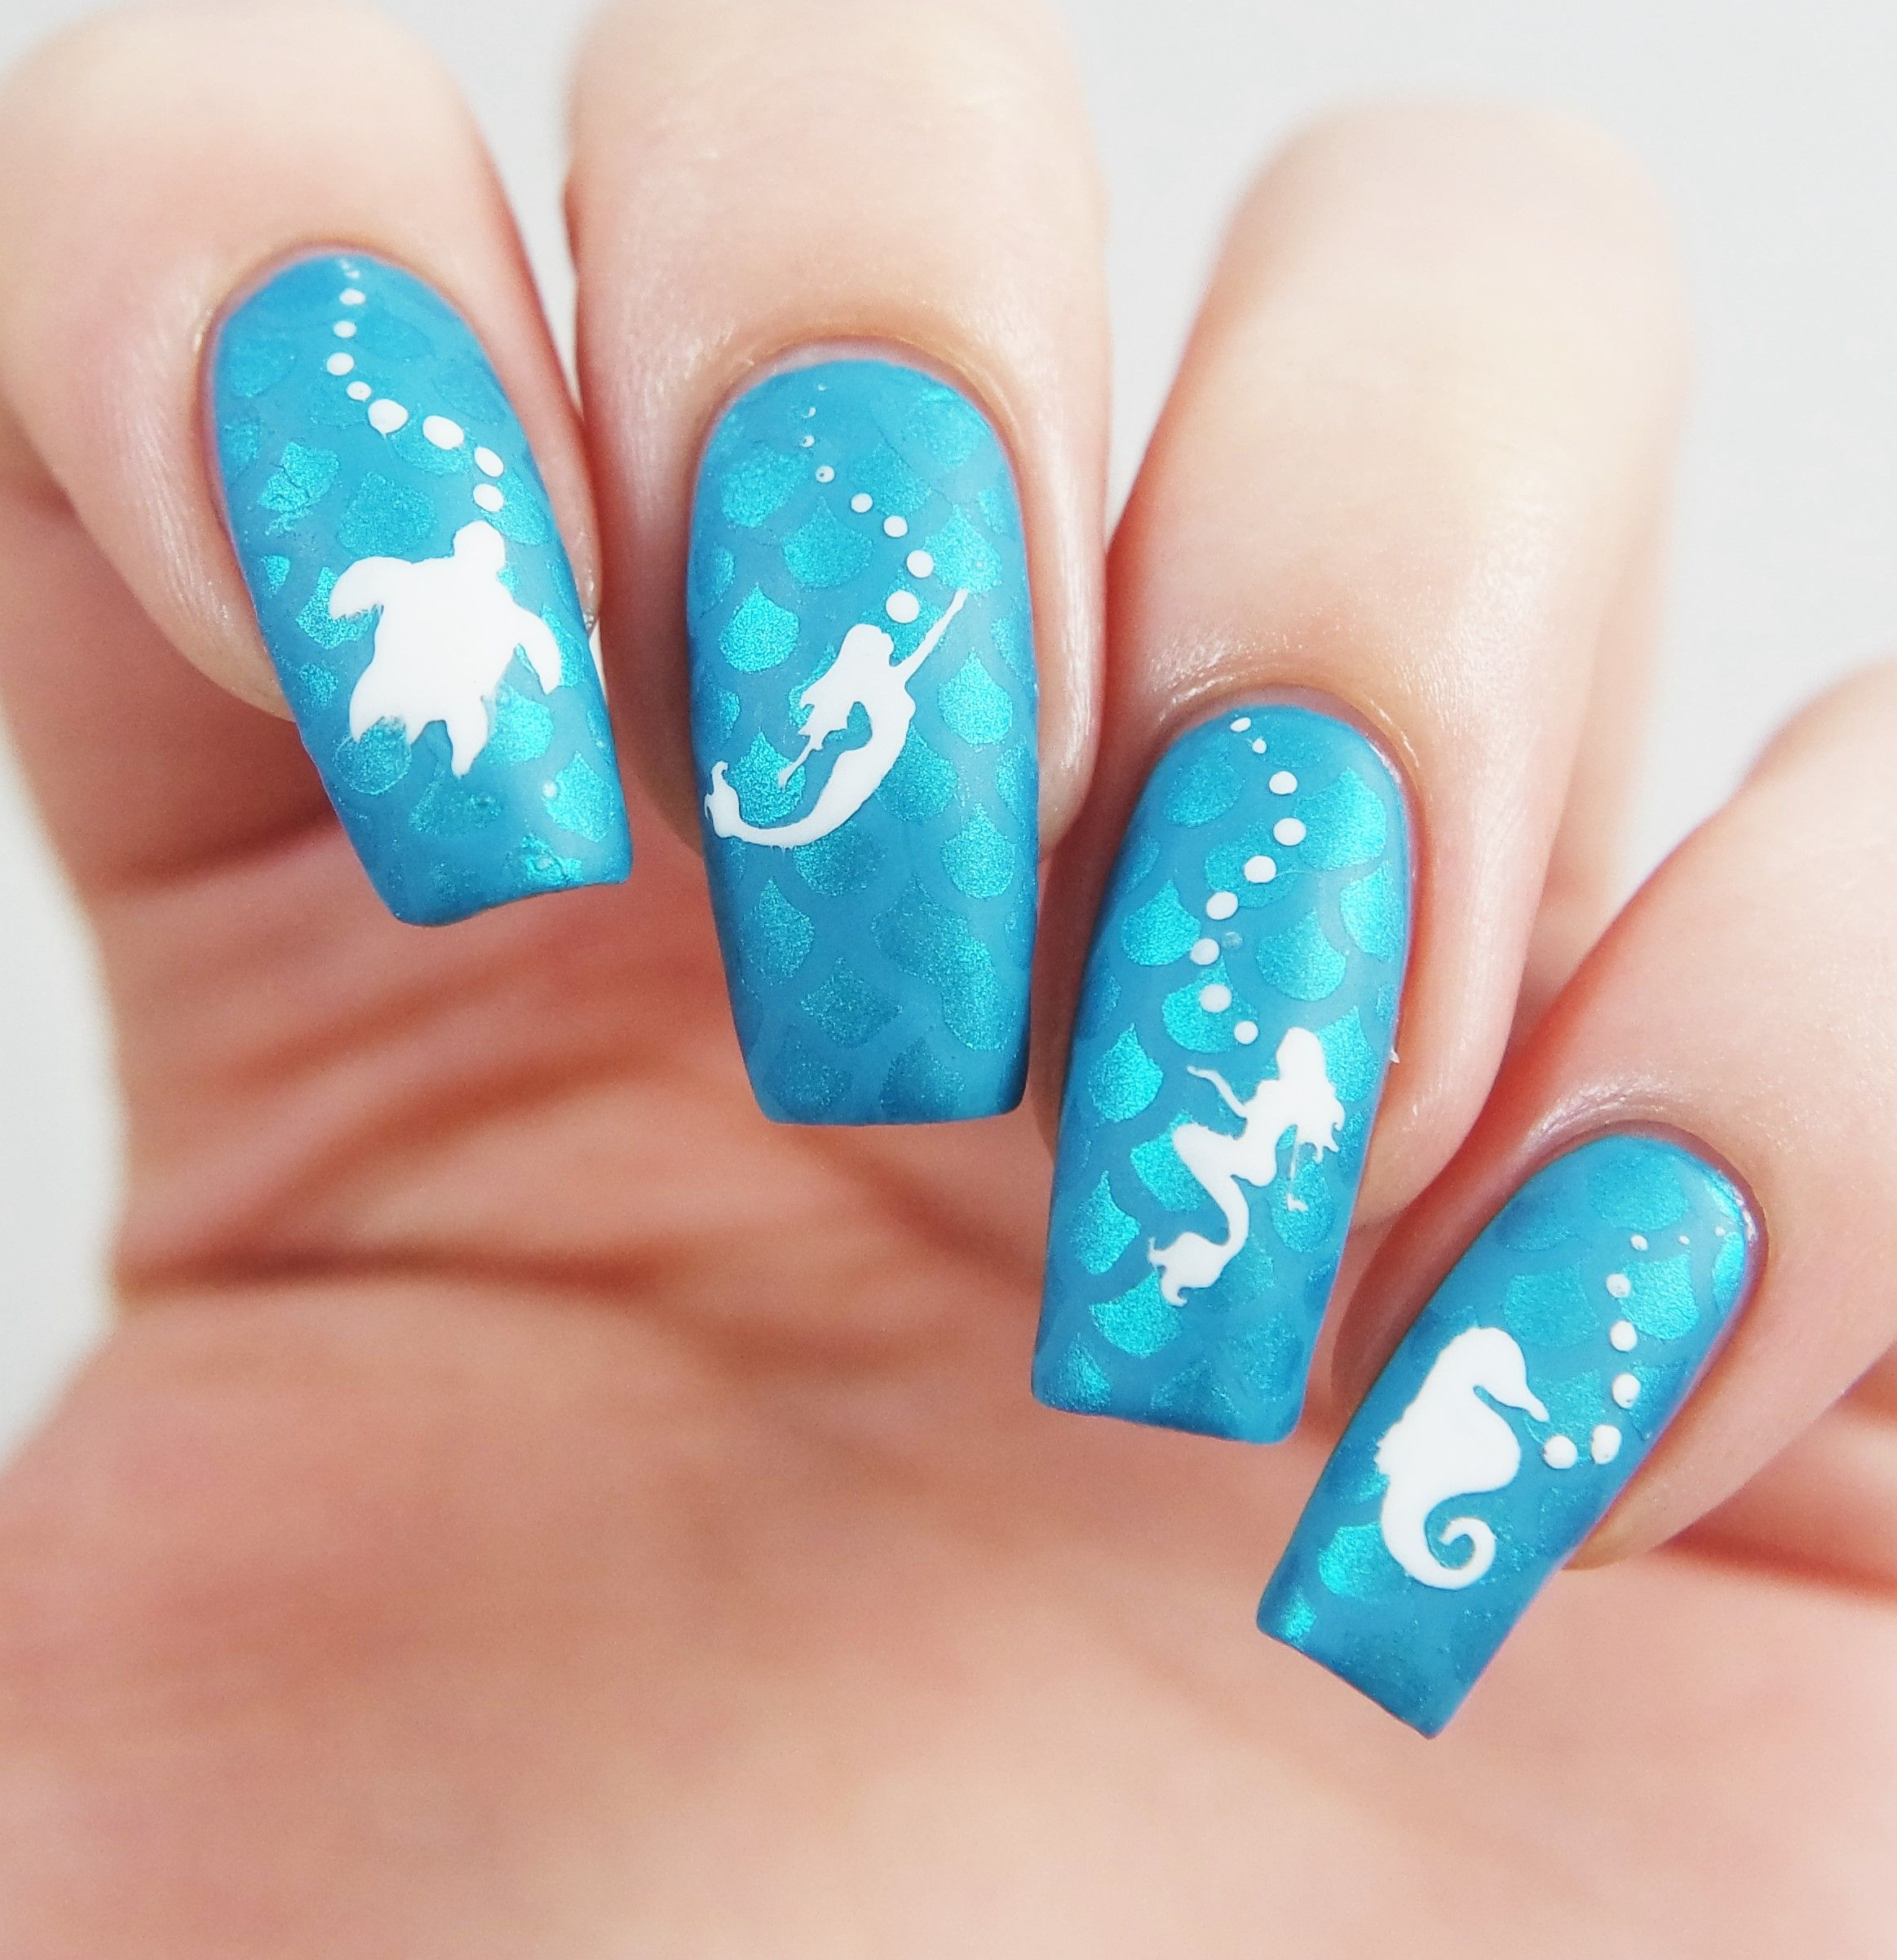 Turquoise Under The Sea Manicure Using Our Mermaid Hawaiian Sea Turtle And Seahorse Nail Decals Found At Snail Mermaid Nails Turtle Nail Art Hawaiian Nail Art